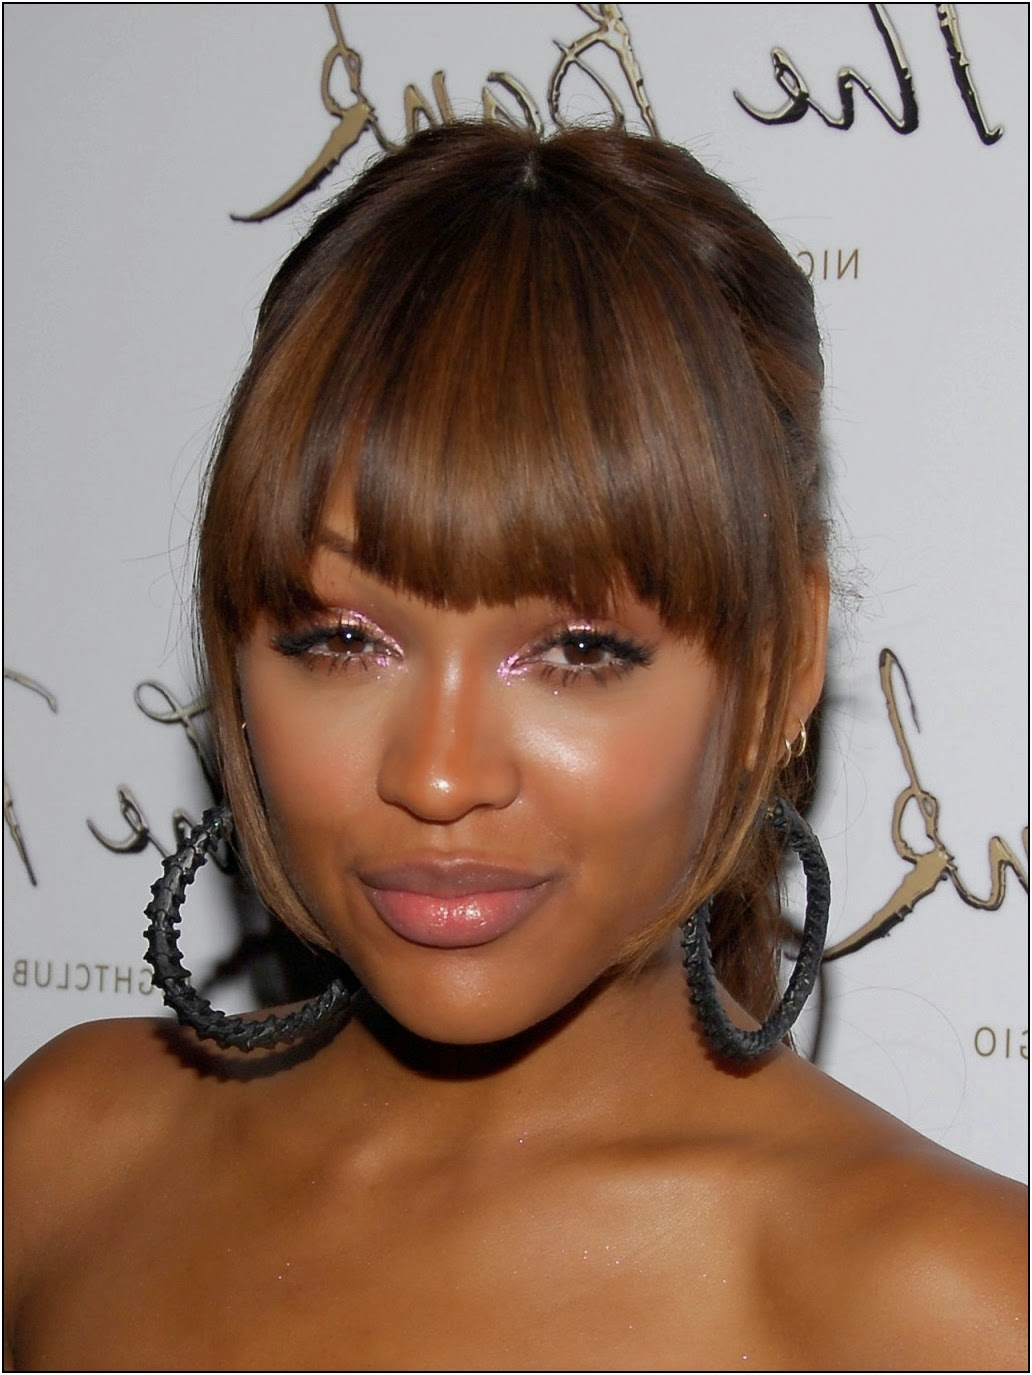 Olii S Blog Megan Good And Keri Hilson Hairstyle Trendsetters